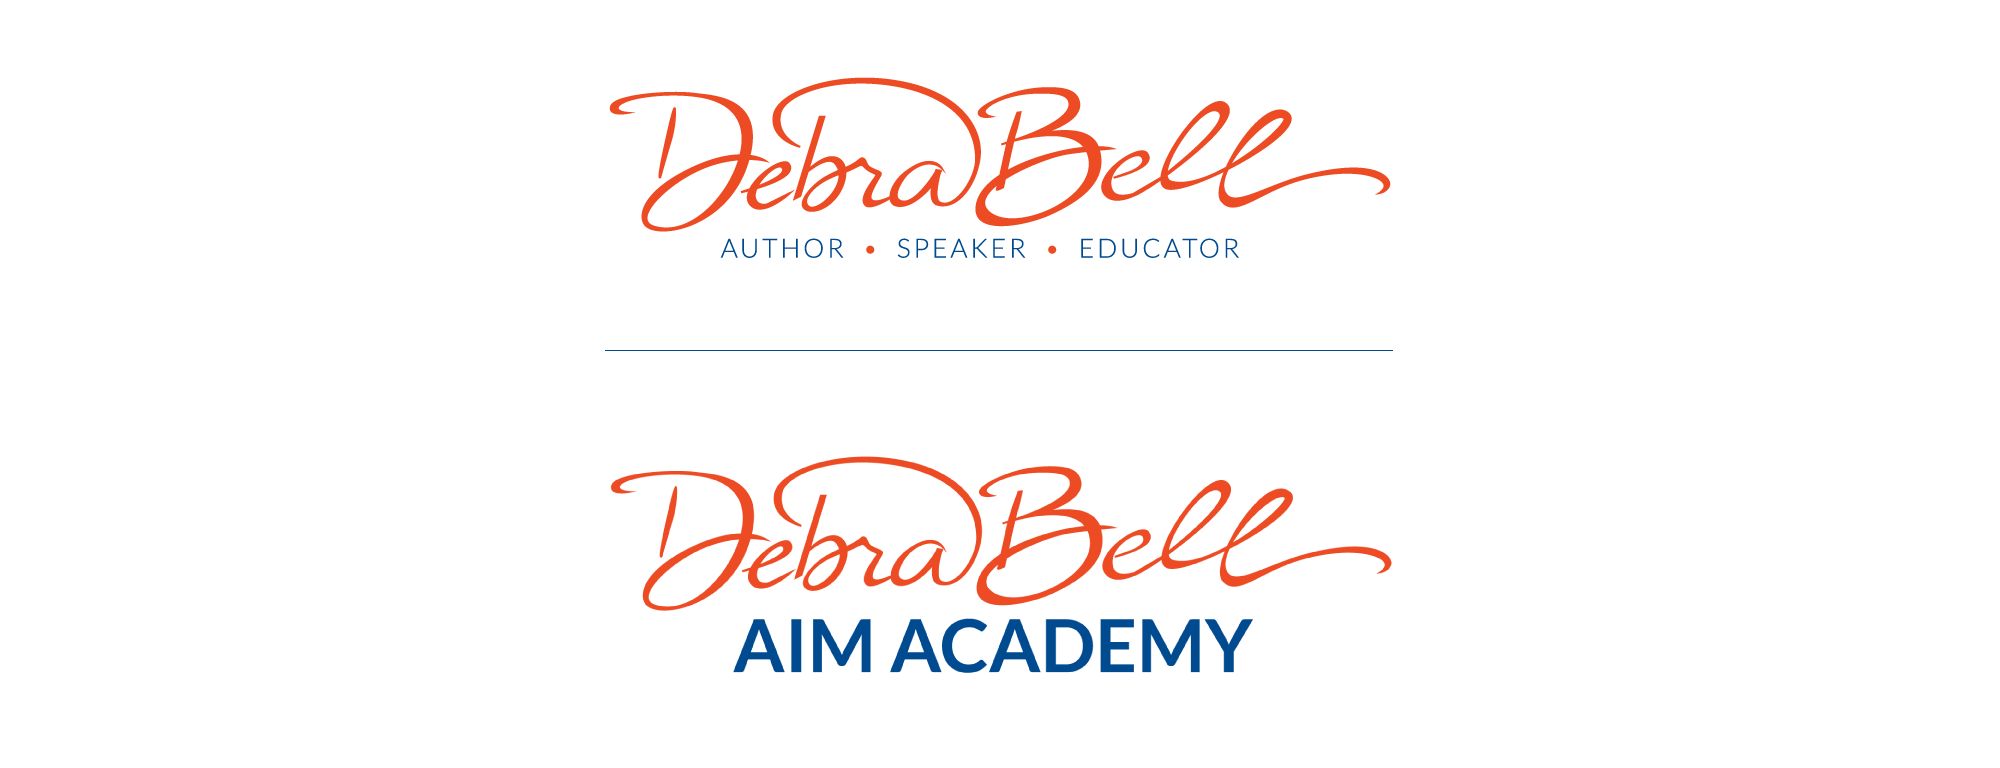 DebraBell.com log work